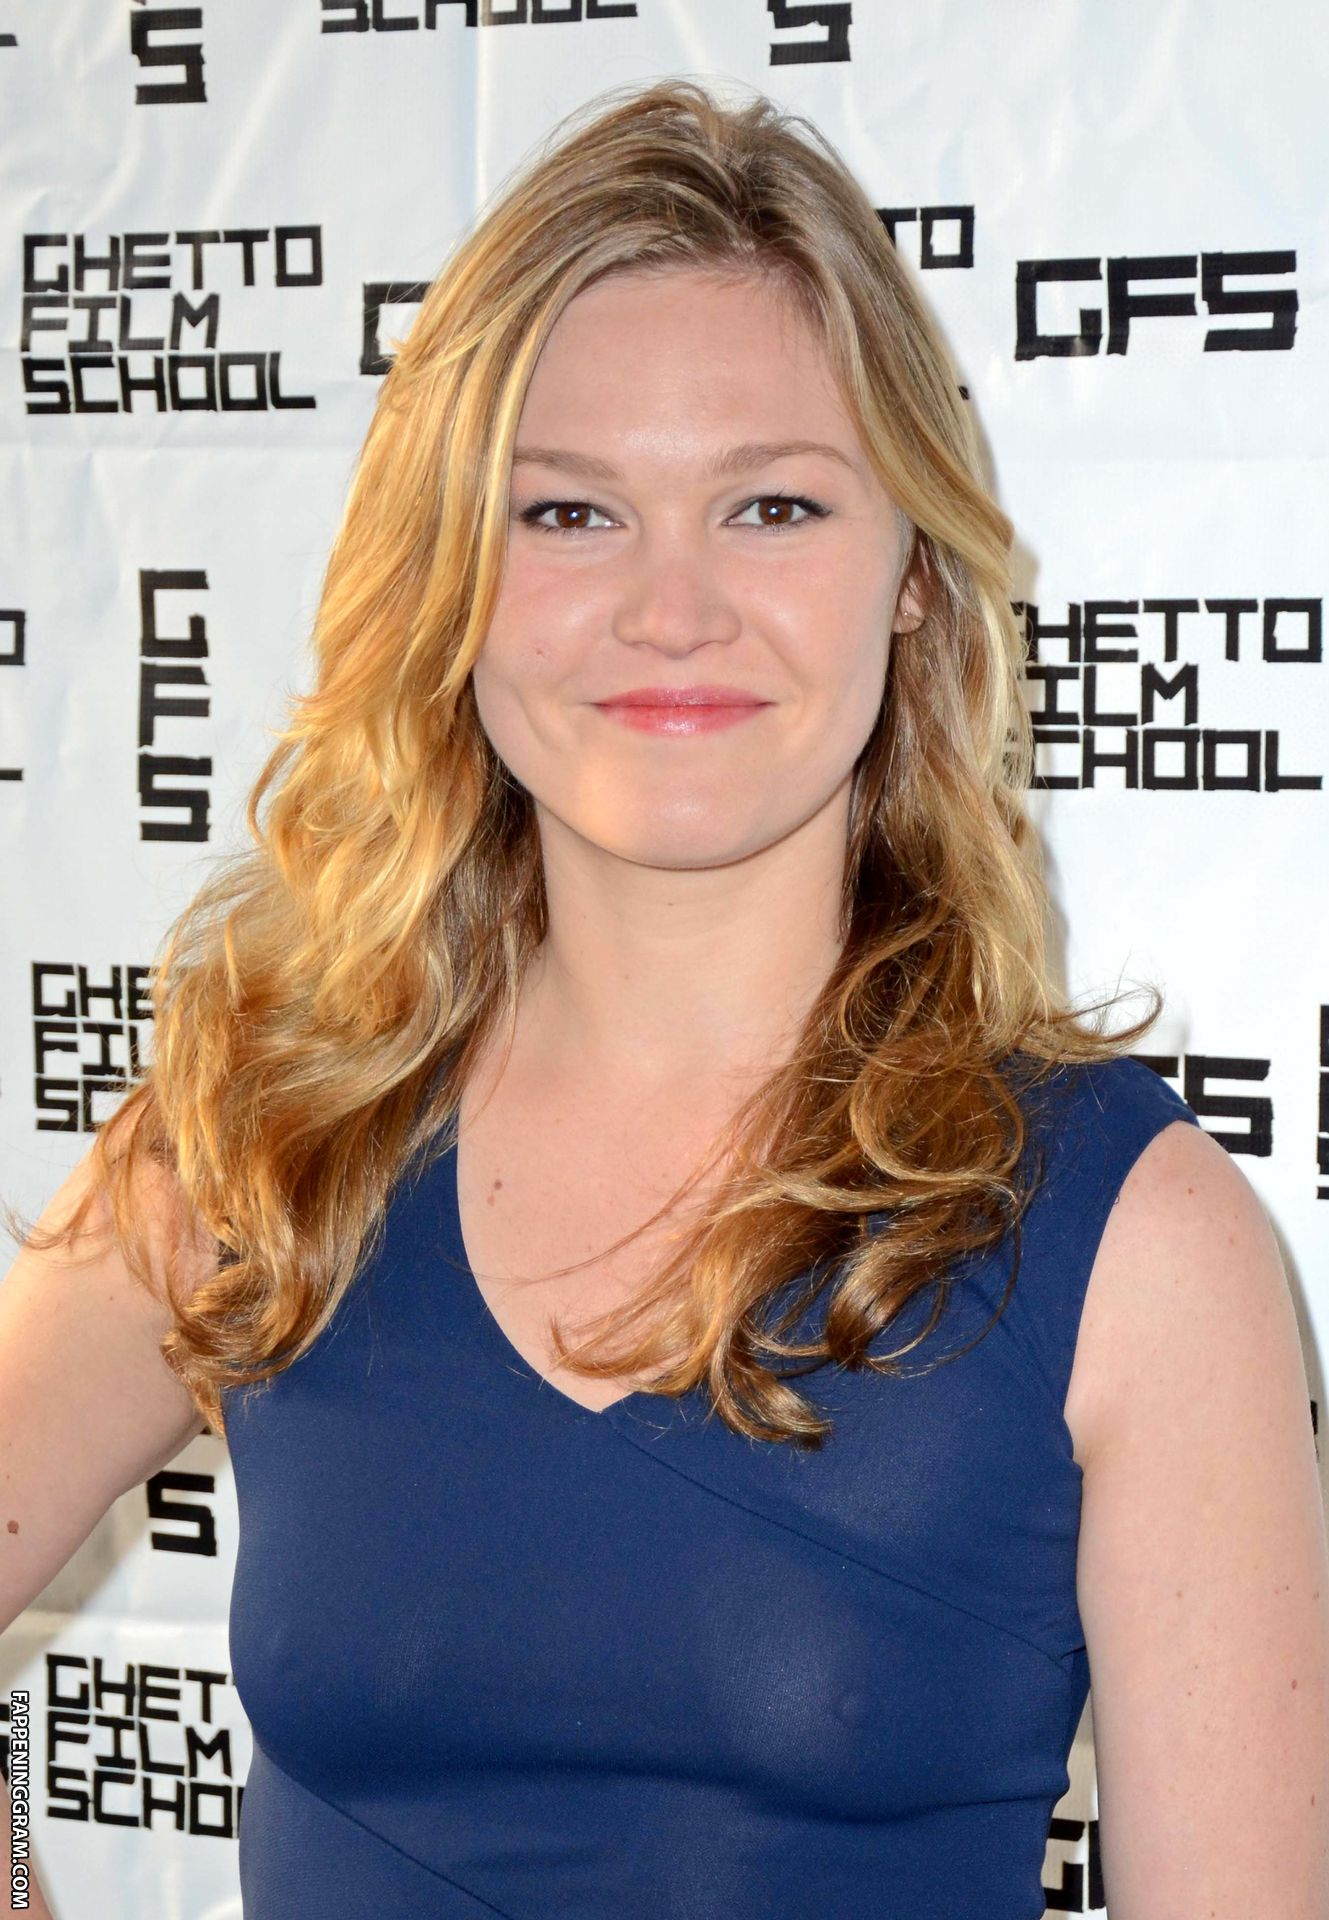 49 Hot Pictures Of Julia Stiles That Are Way Too Steamy